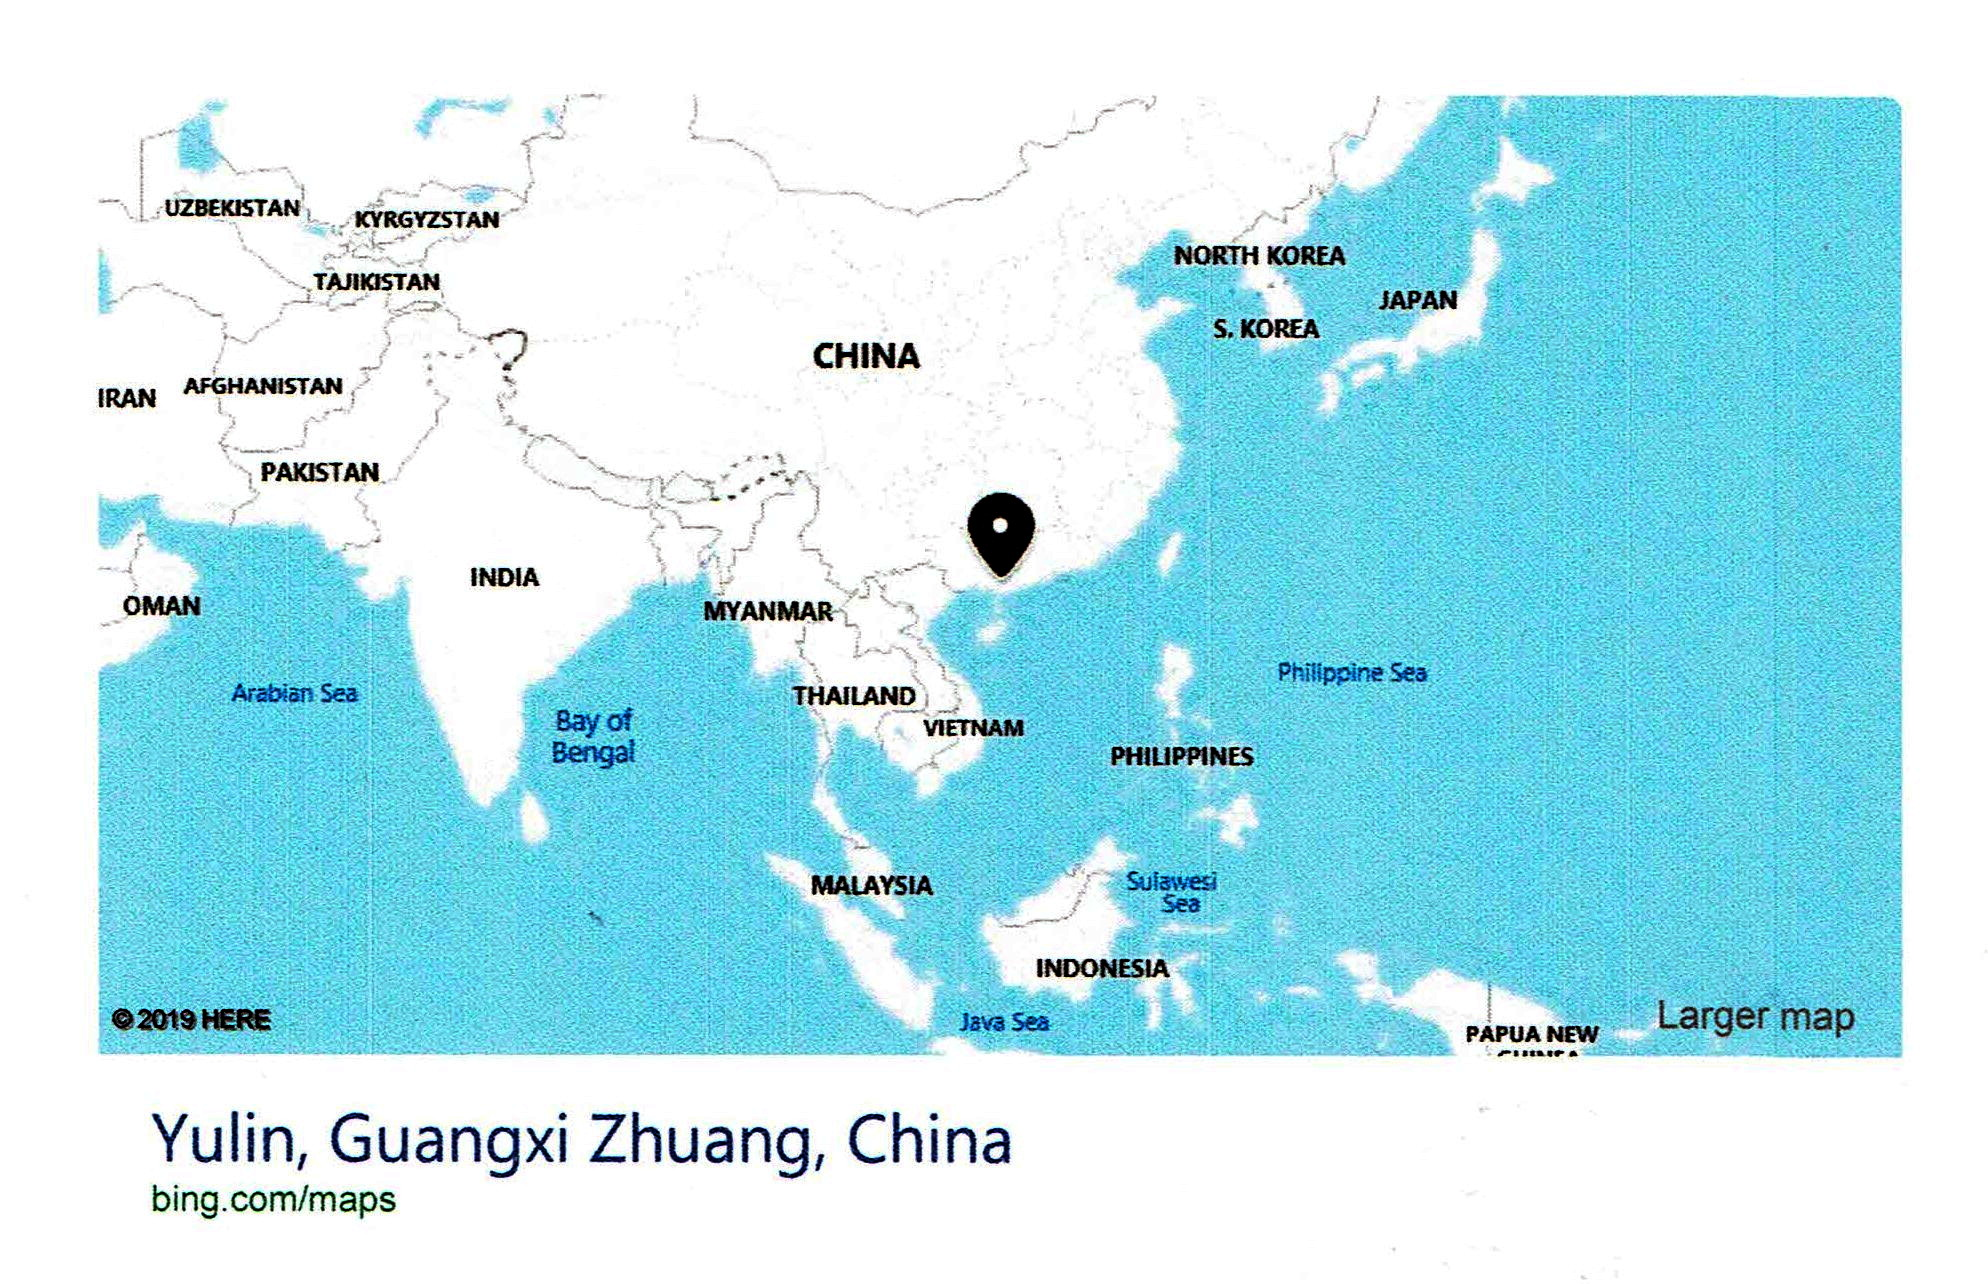 eYulinBoycott | elyNCD.com on yulin china weather, shaanxi china on world map, yulin qingdao map,